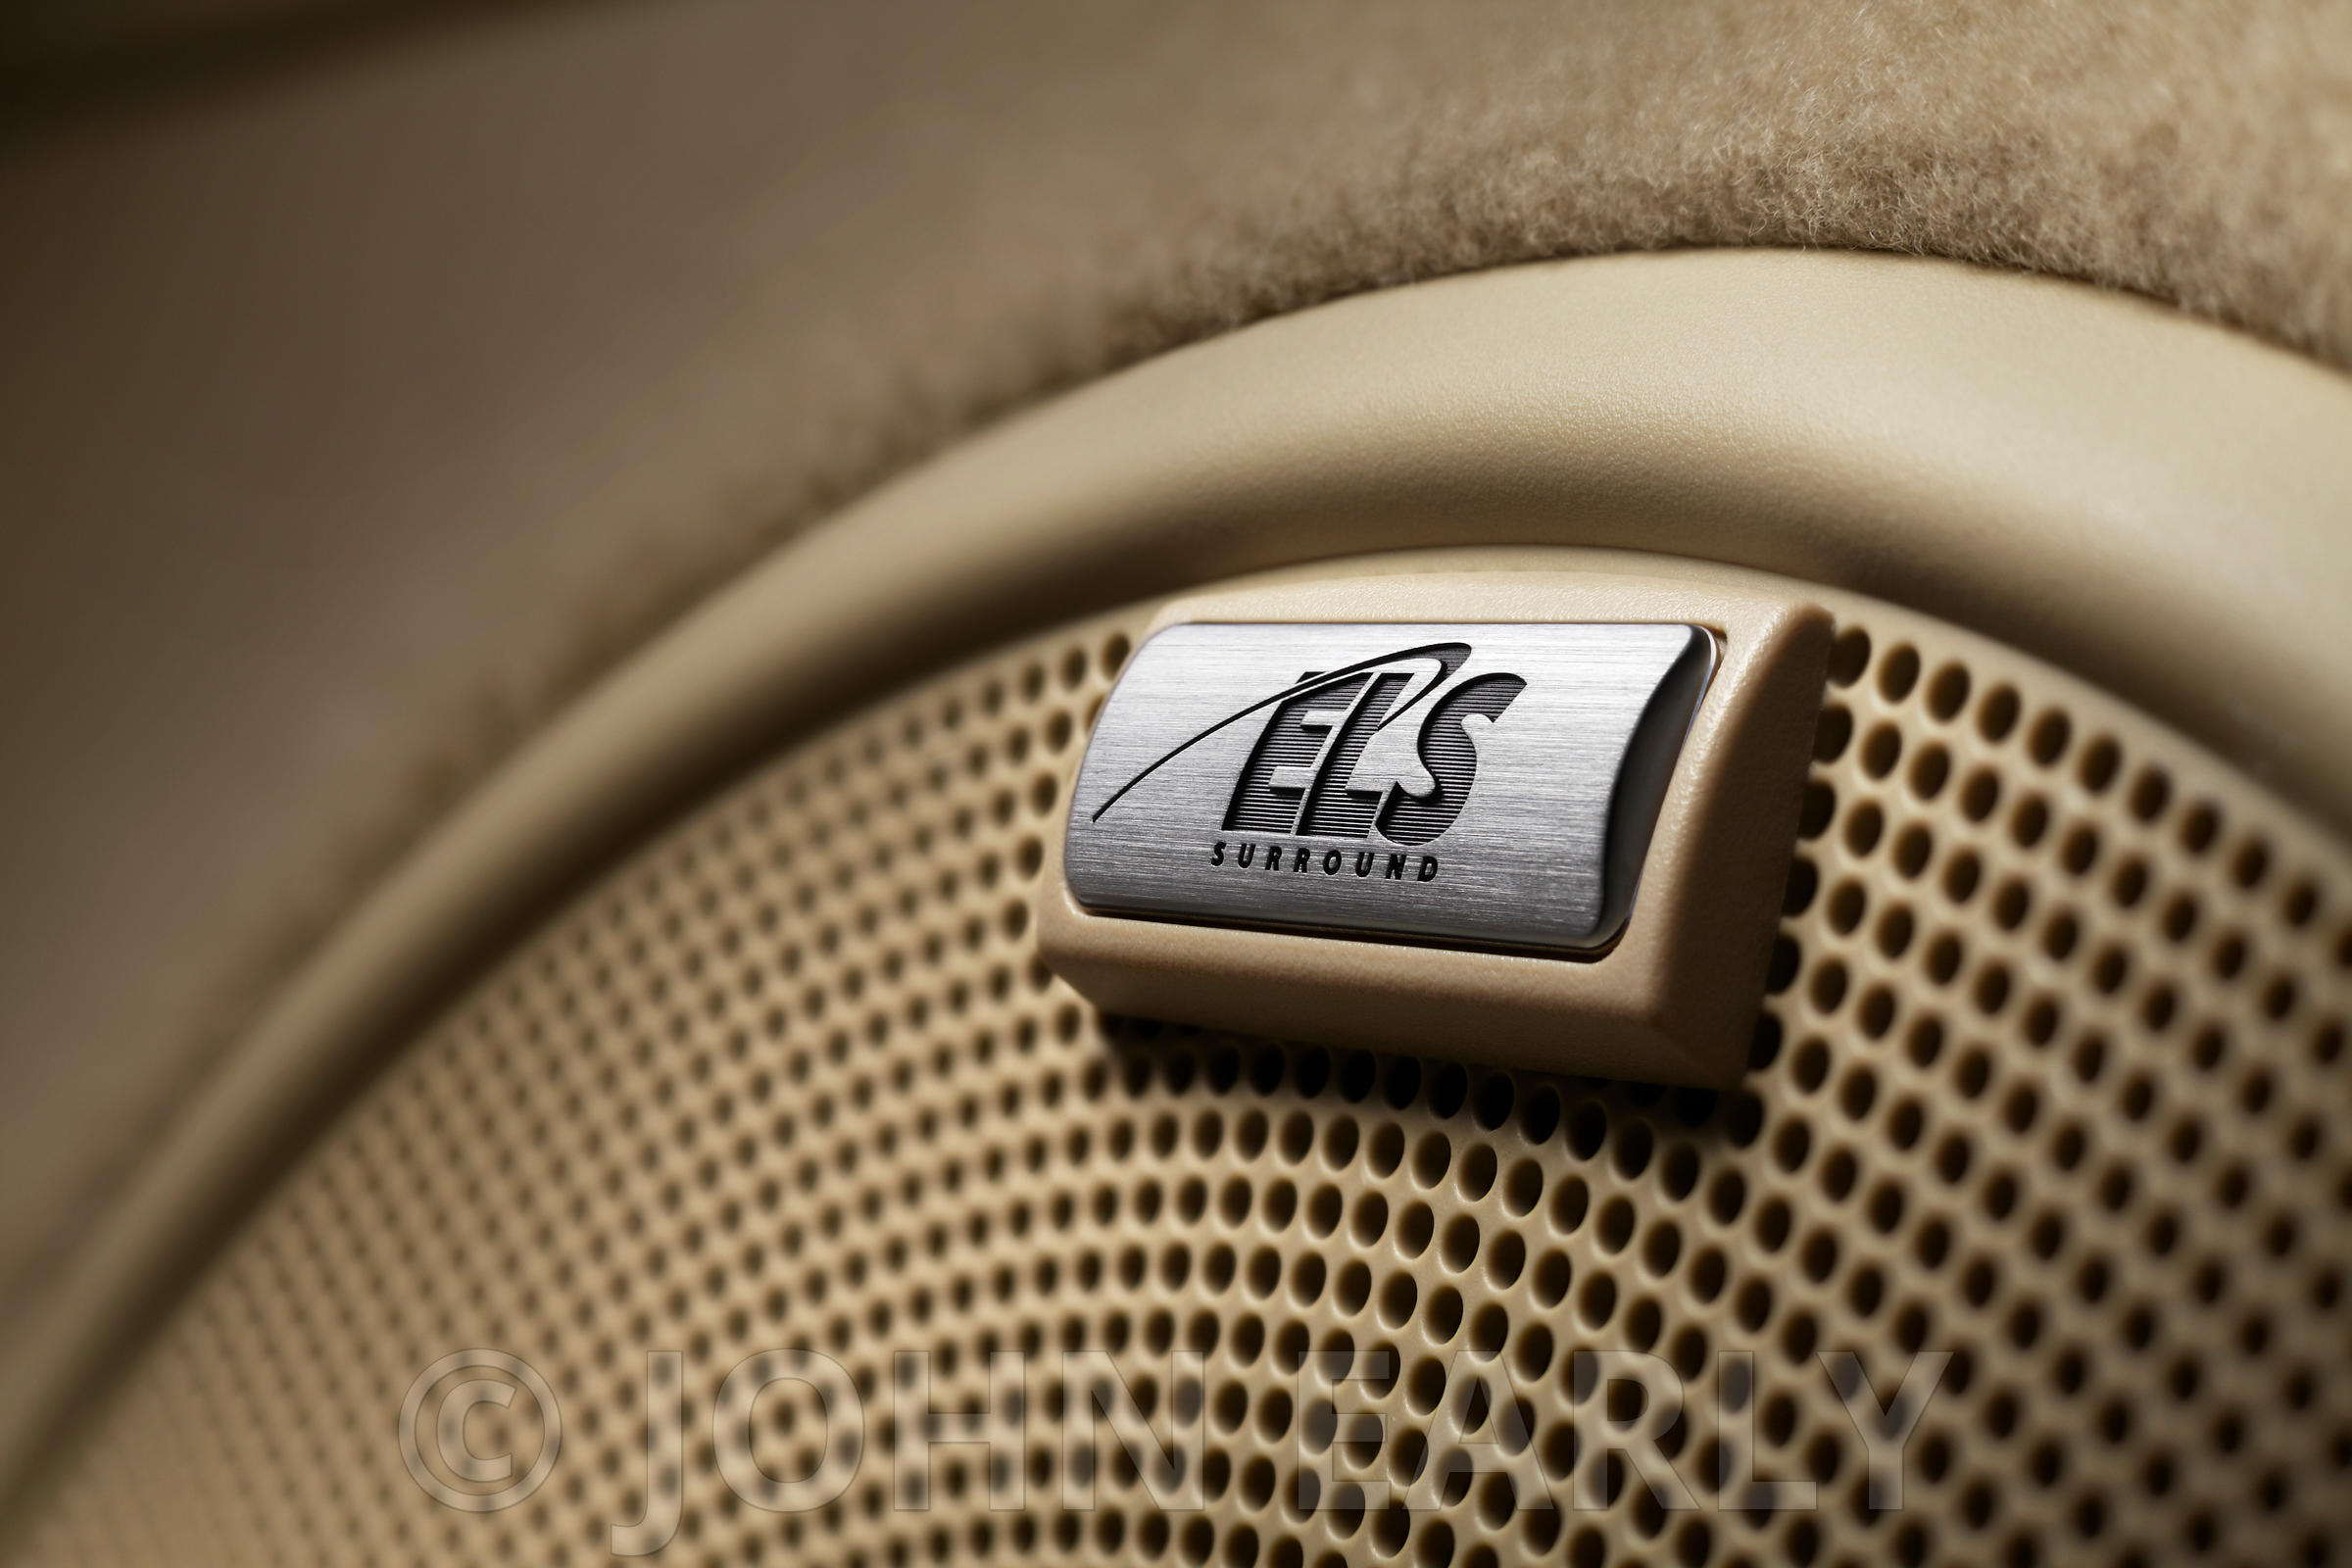 Close-Up Shot of Premium Sound Speaker Detail in a Car